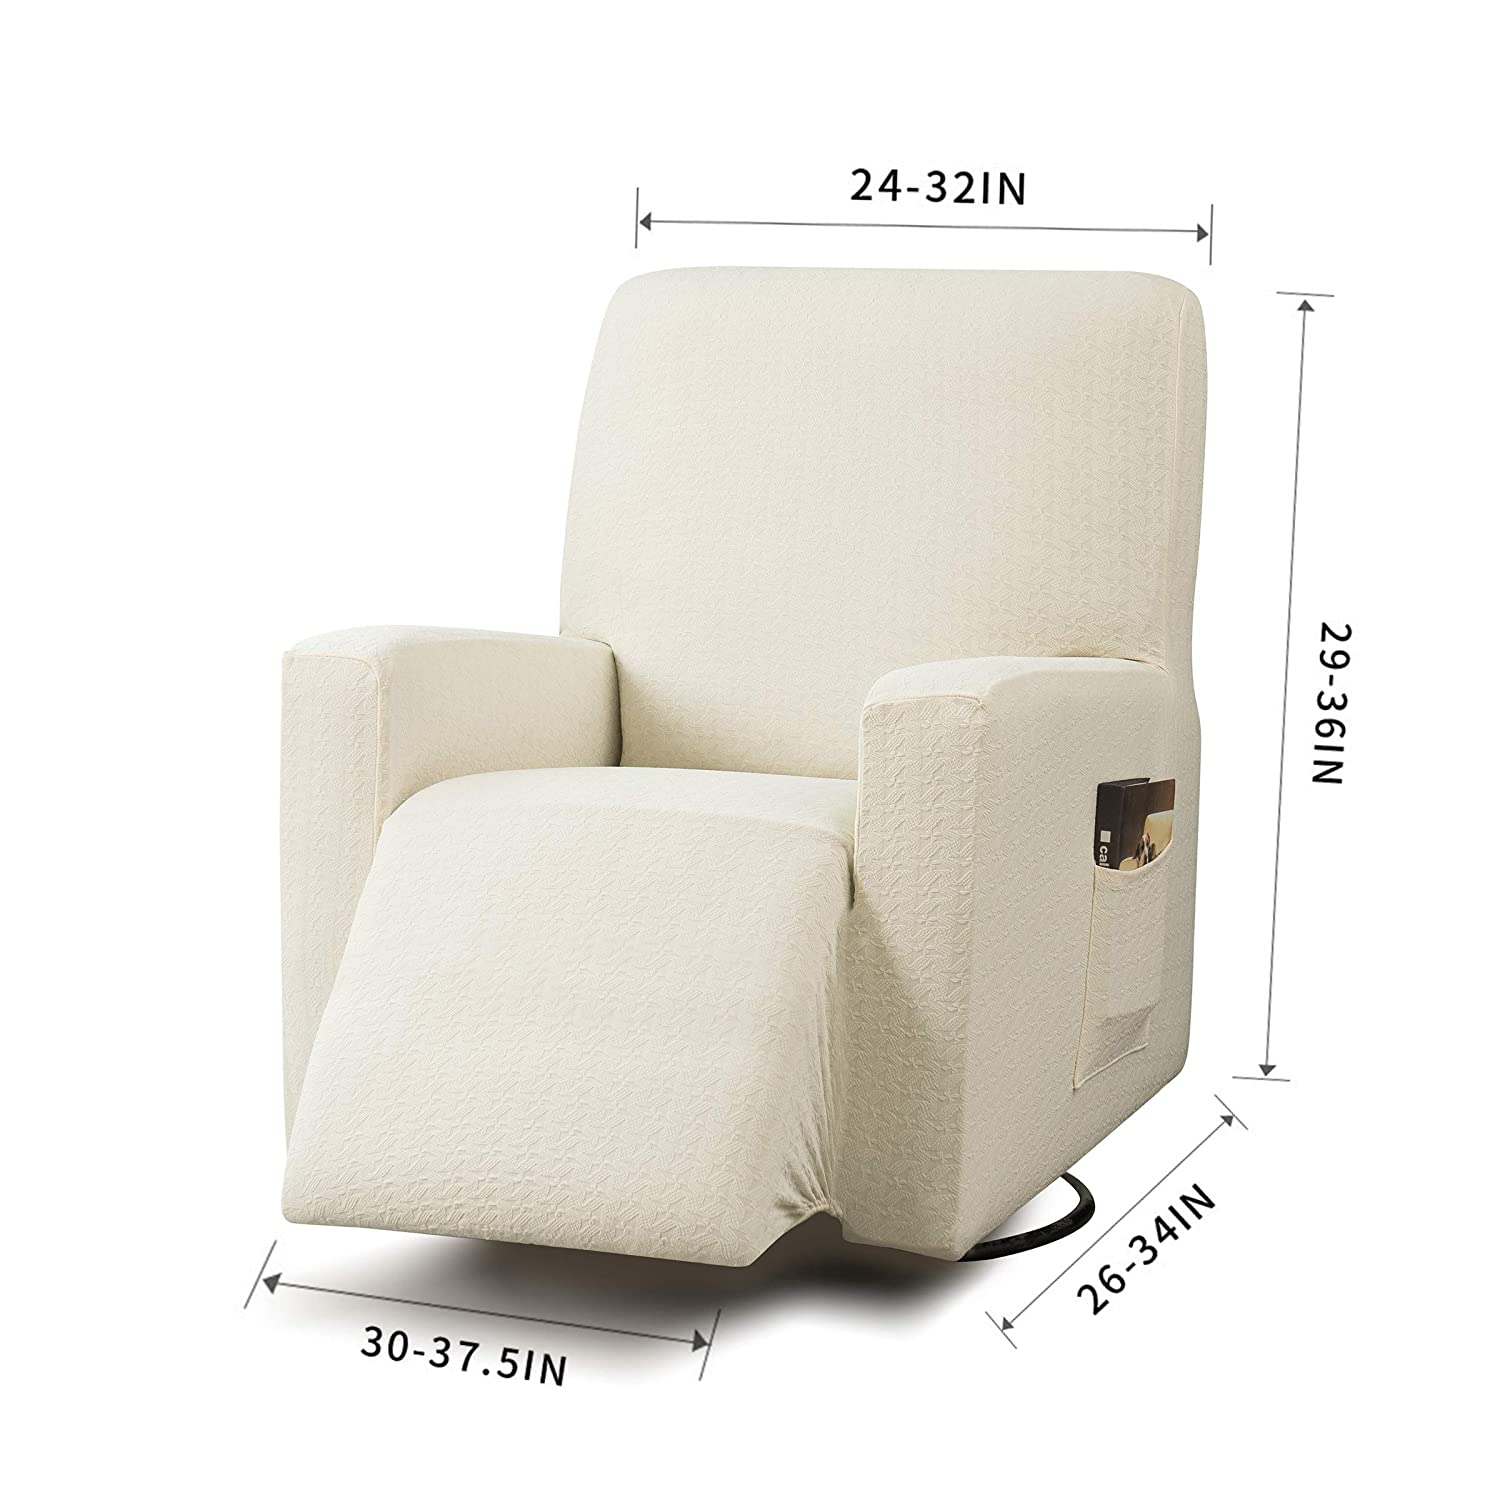 Cool Tikami Recliner Chair Covers With Remote Pocket Oversized Chair Slipcover Spandex Anti Slip Sofa Slipcovers Furniture Protector Off White Creativecarmelina Interior Chair Design Creativecarmelinacom